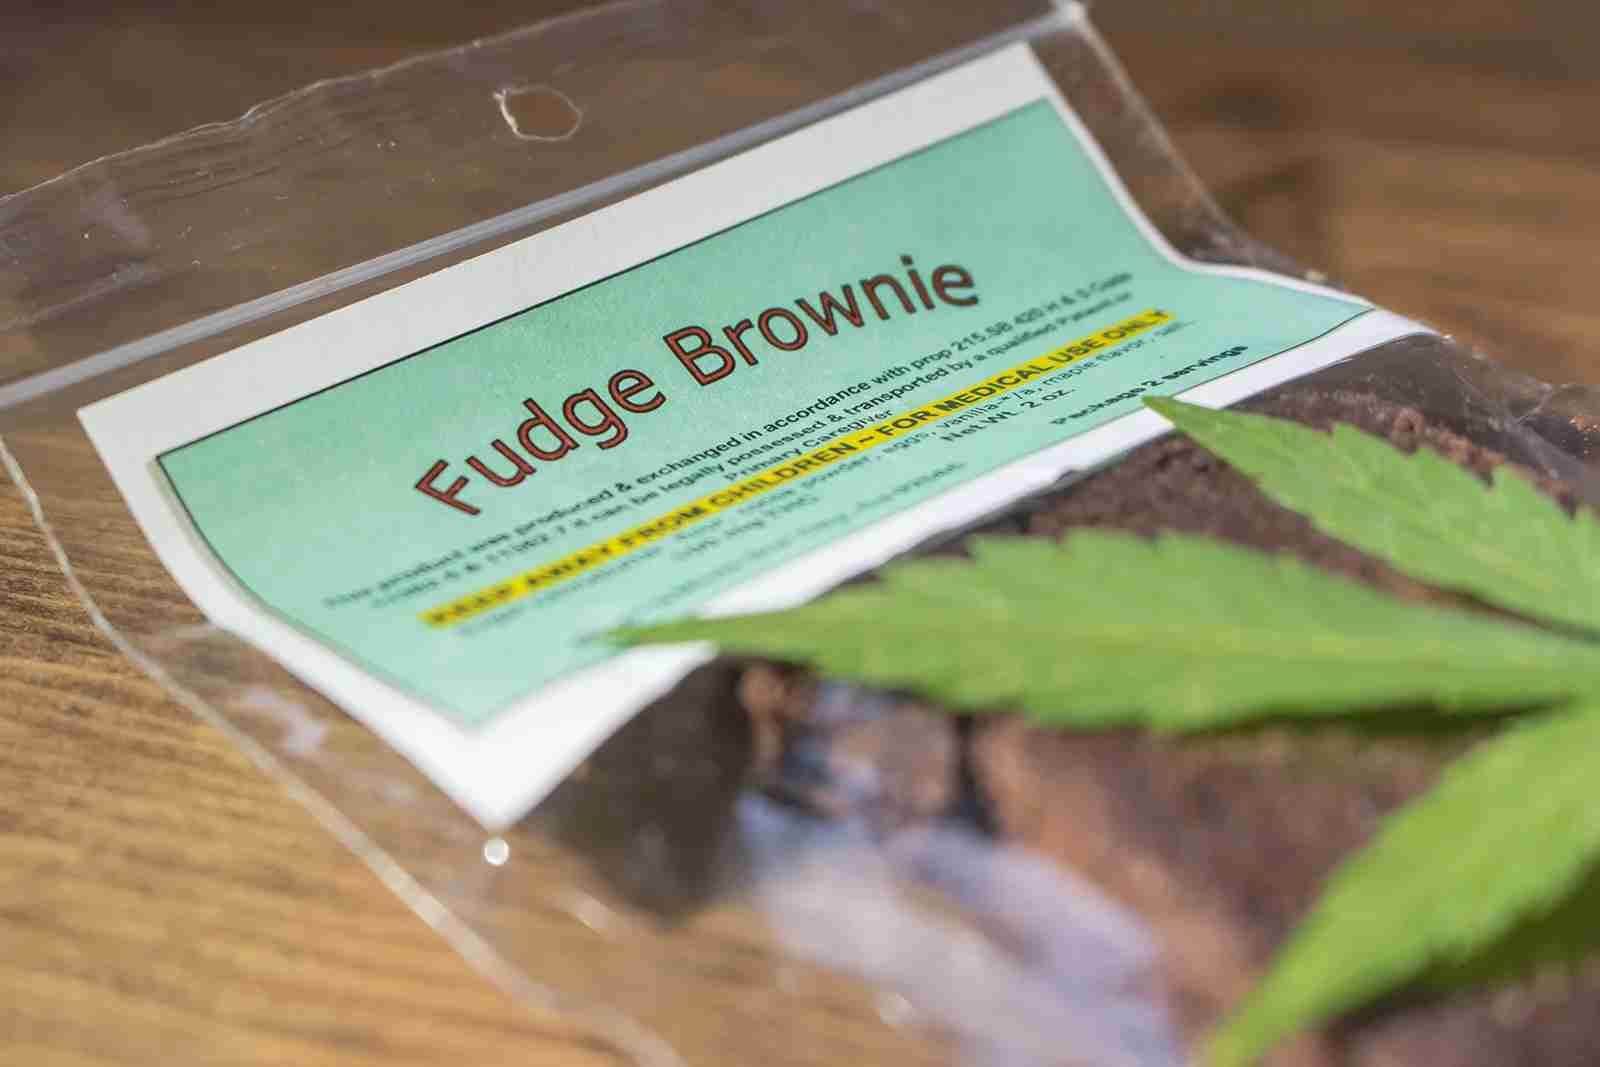 Packaged fudge brownie infused with THC for medicating